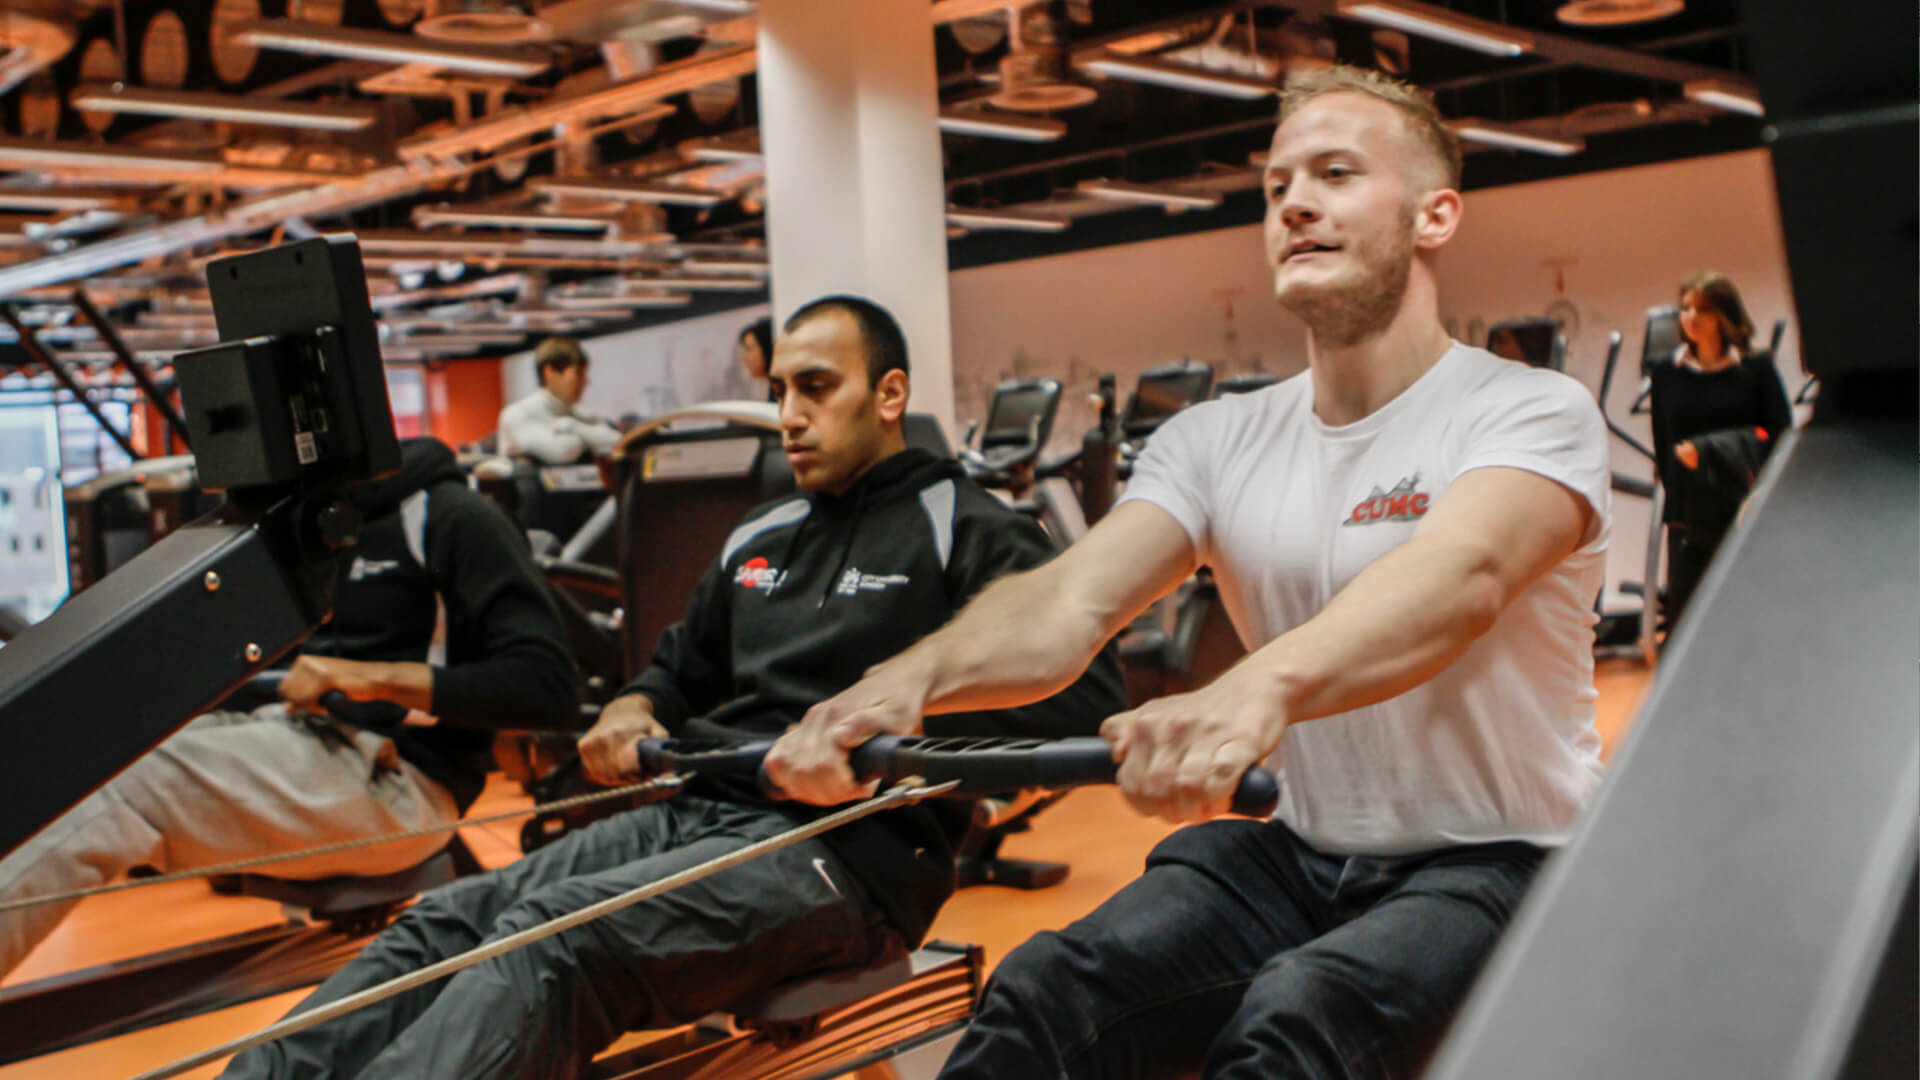 CitySport is the sports and fitness centre of City, University of London